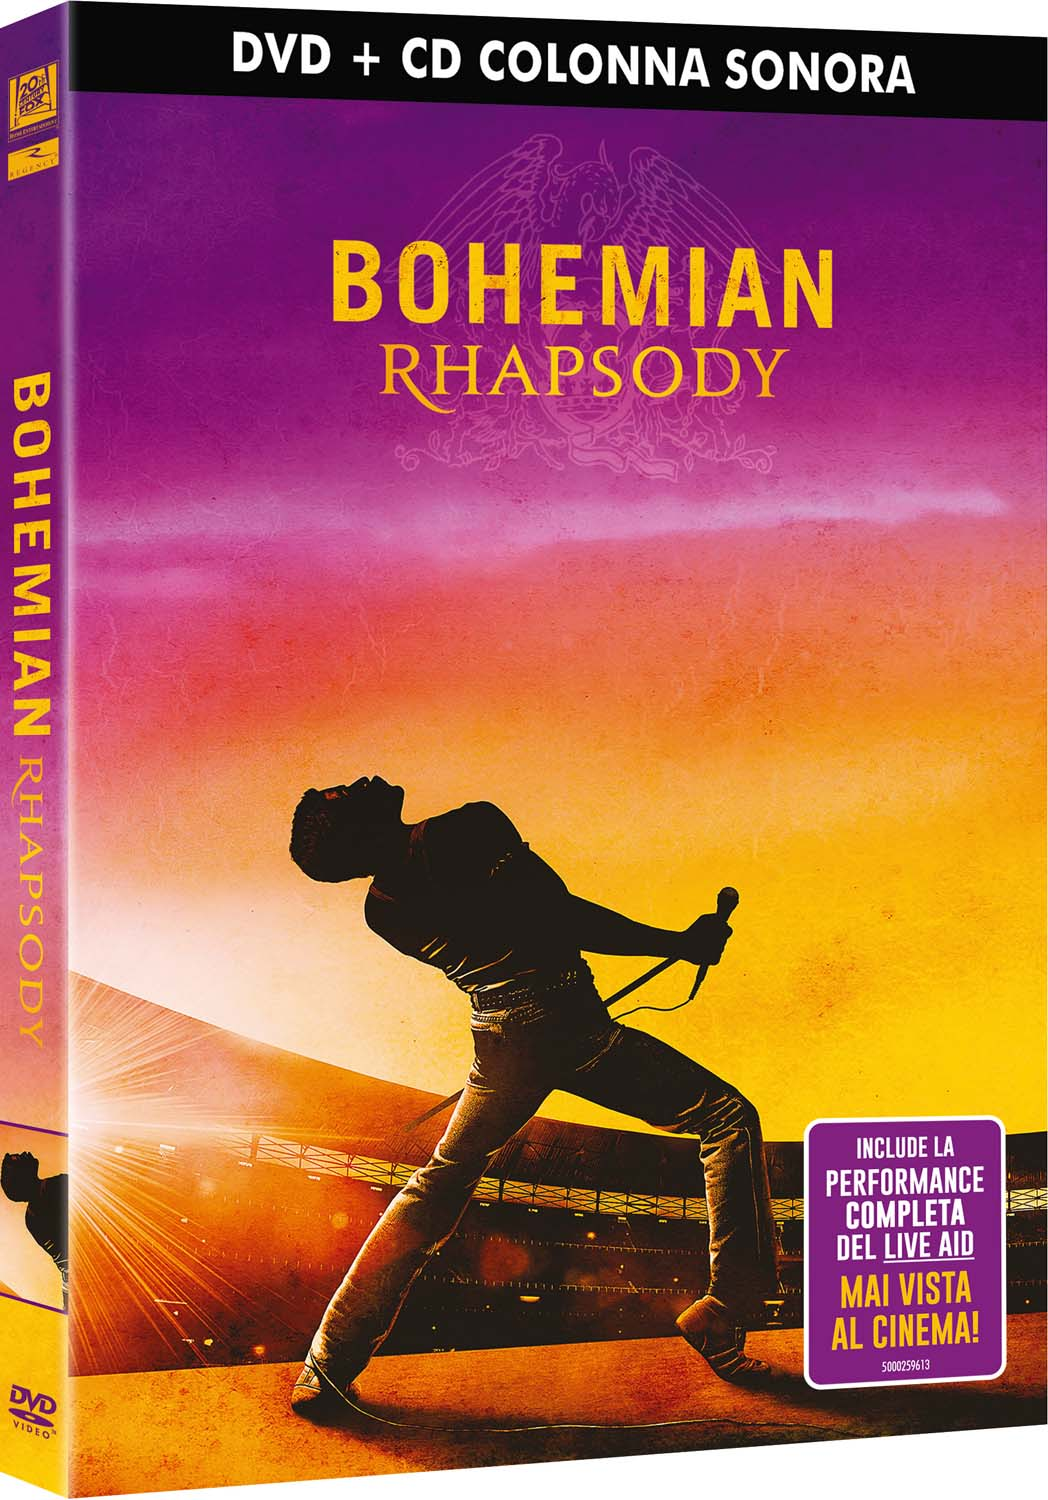 COF.BOHEMIAN RHAPSODY (LTD) (DVD+CD) (DVD)